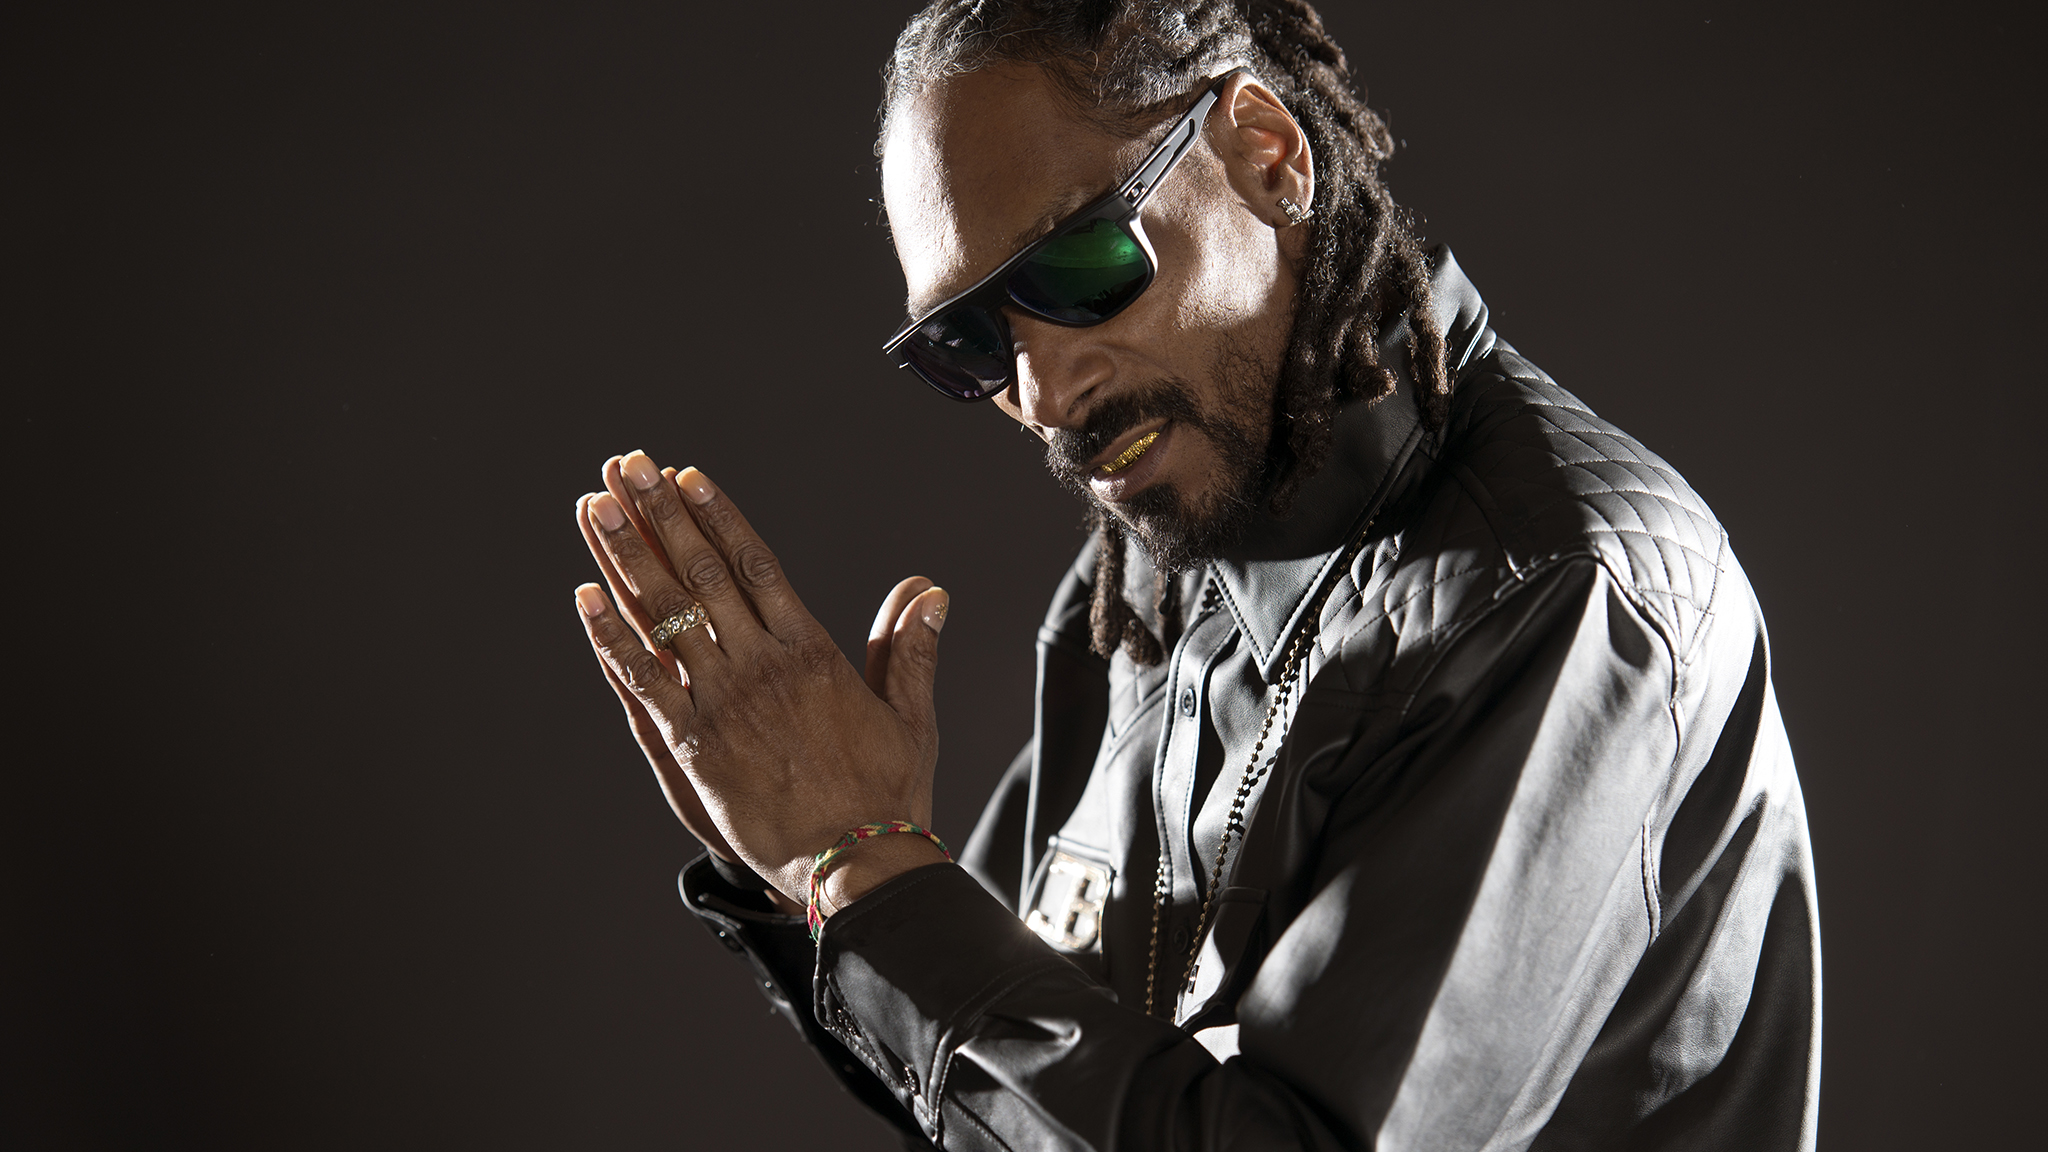 Snoop Dogg – Don't Let Go